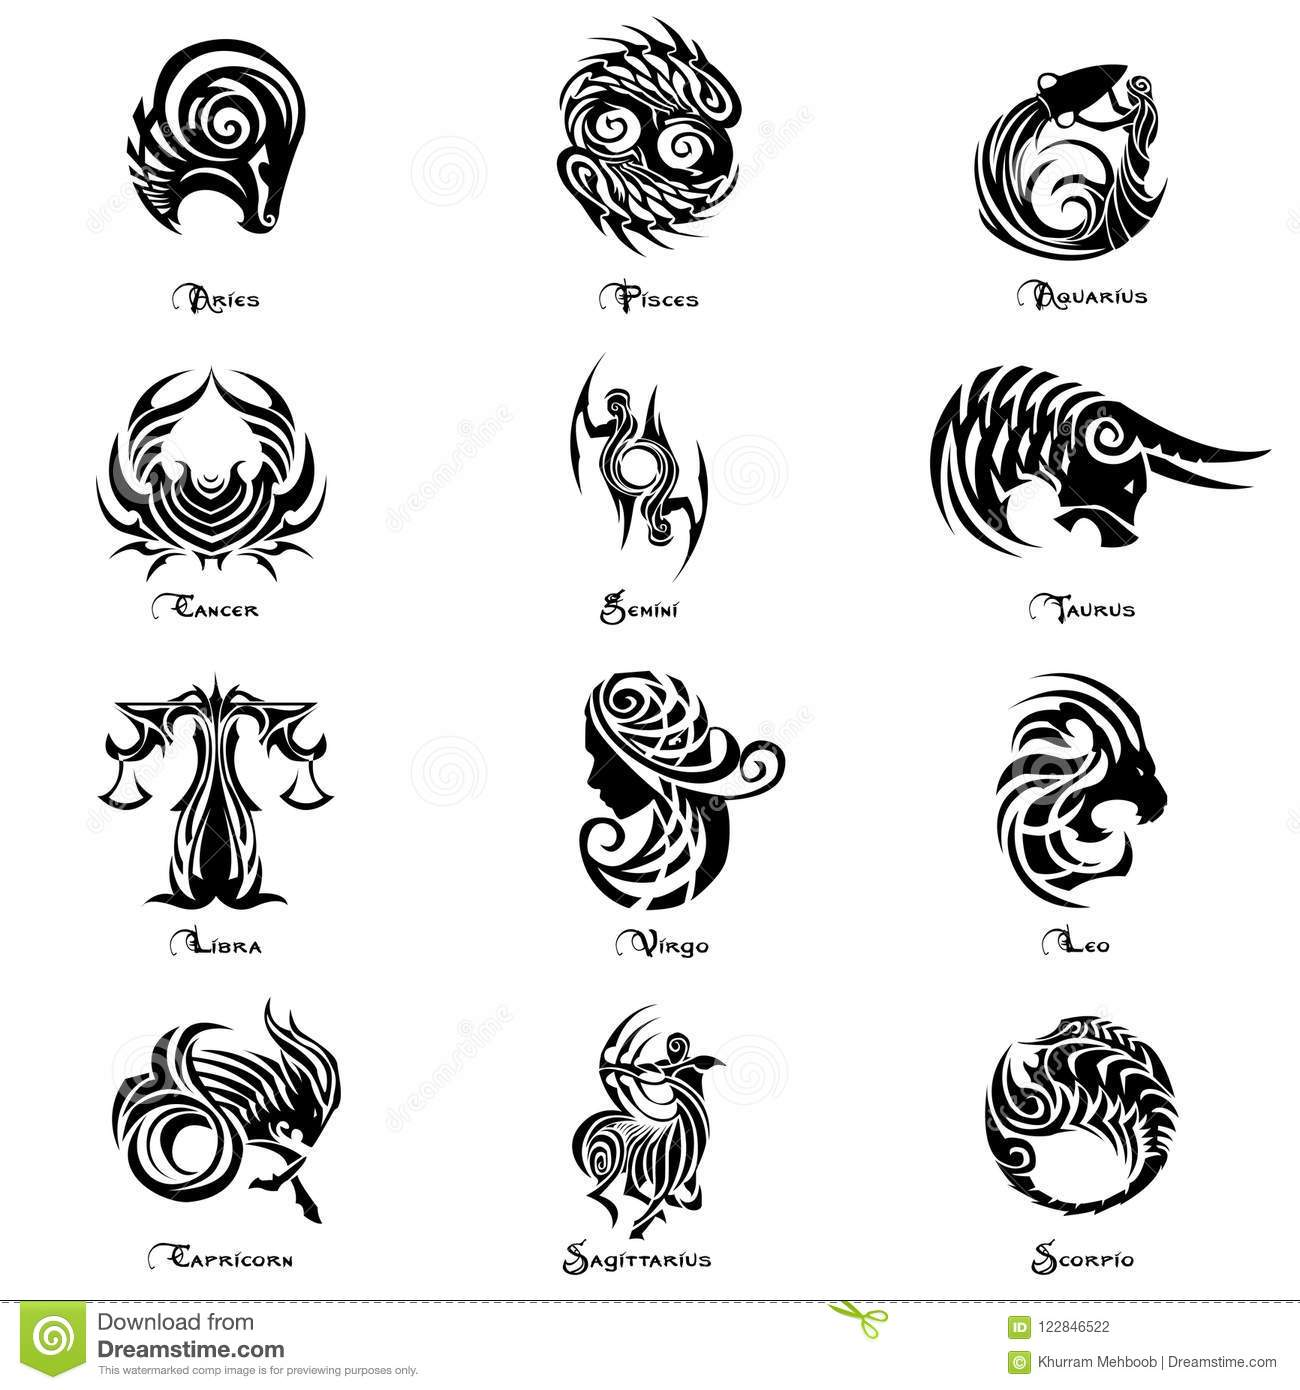 Zodiac Sign Complete Set Tattoo Style Stock Vector - Illustration of